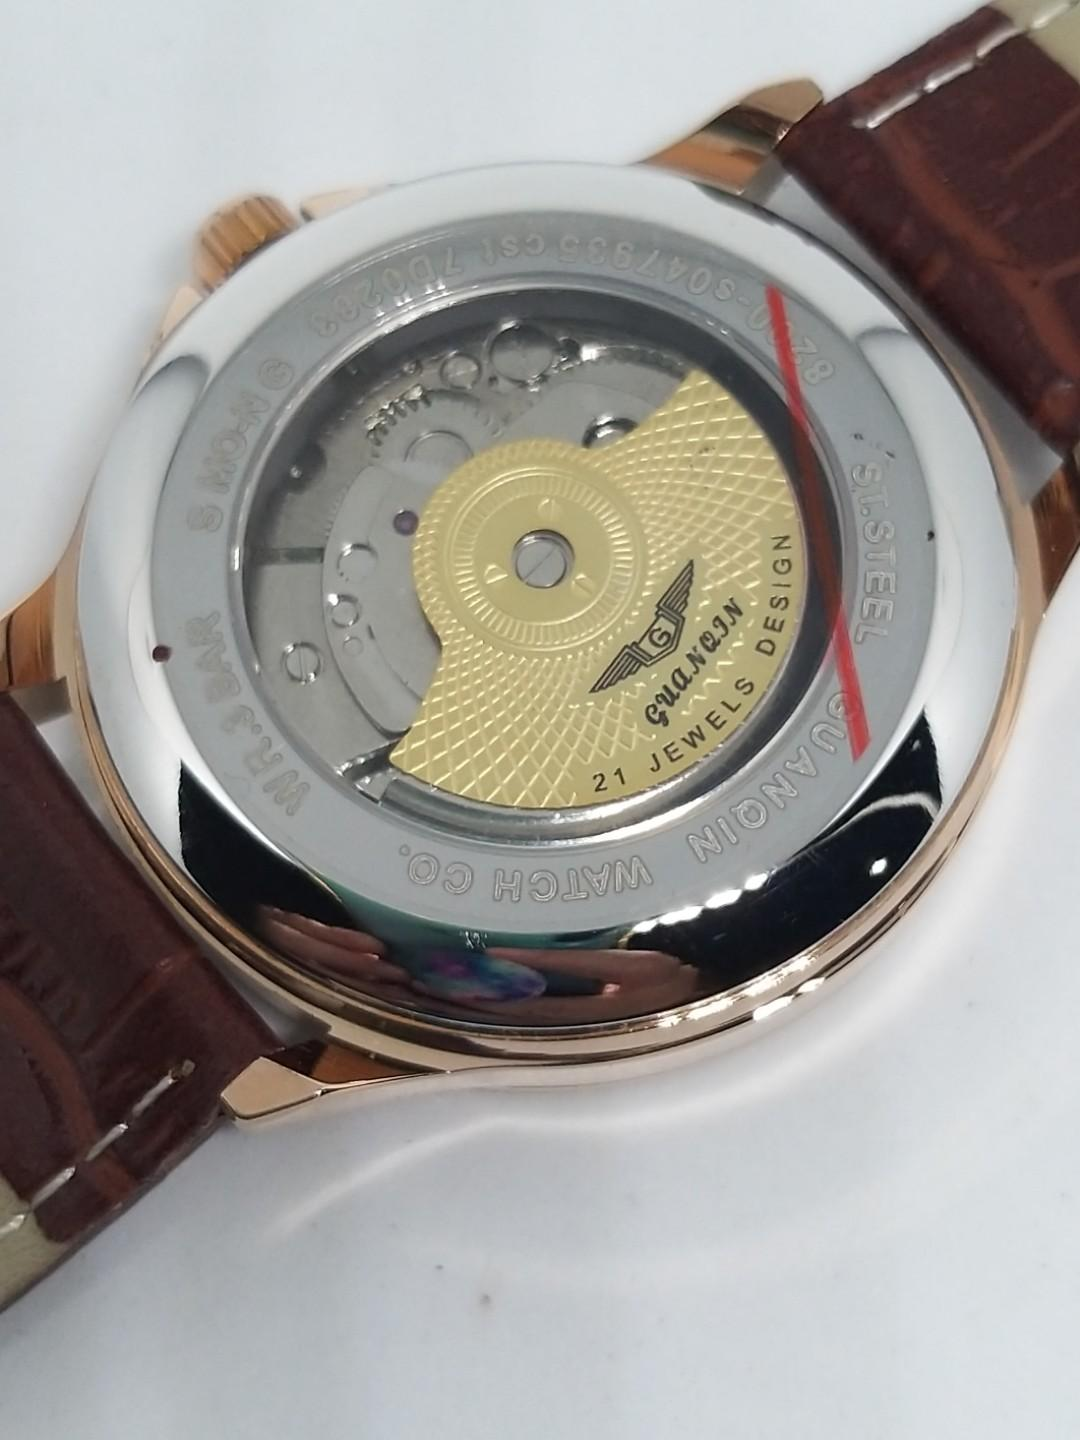 Jam tangan Guanqin Automatic Leather Rose Gold Open heart Moon Phase